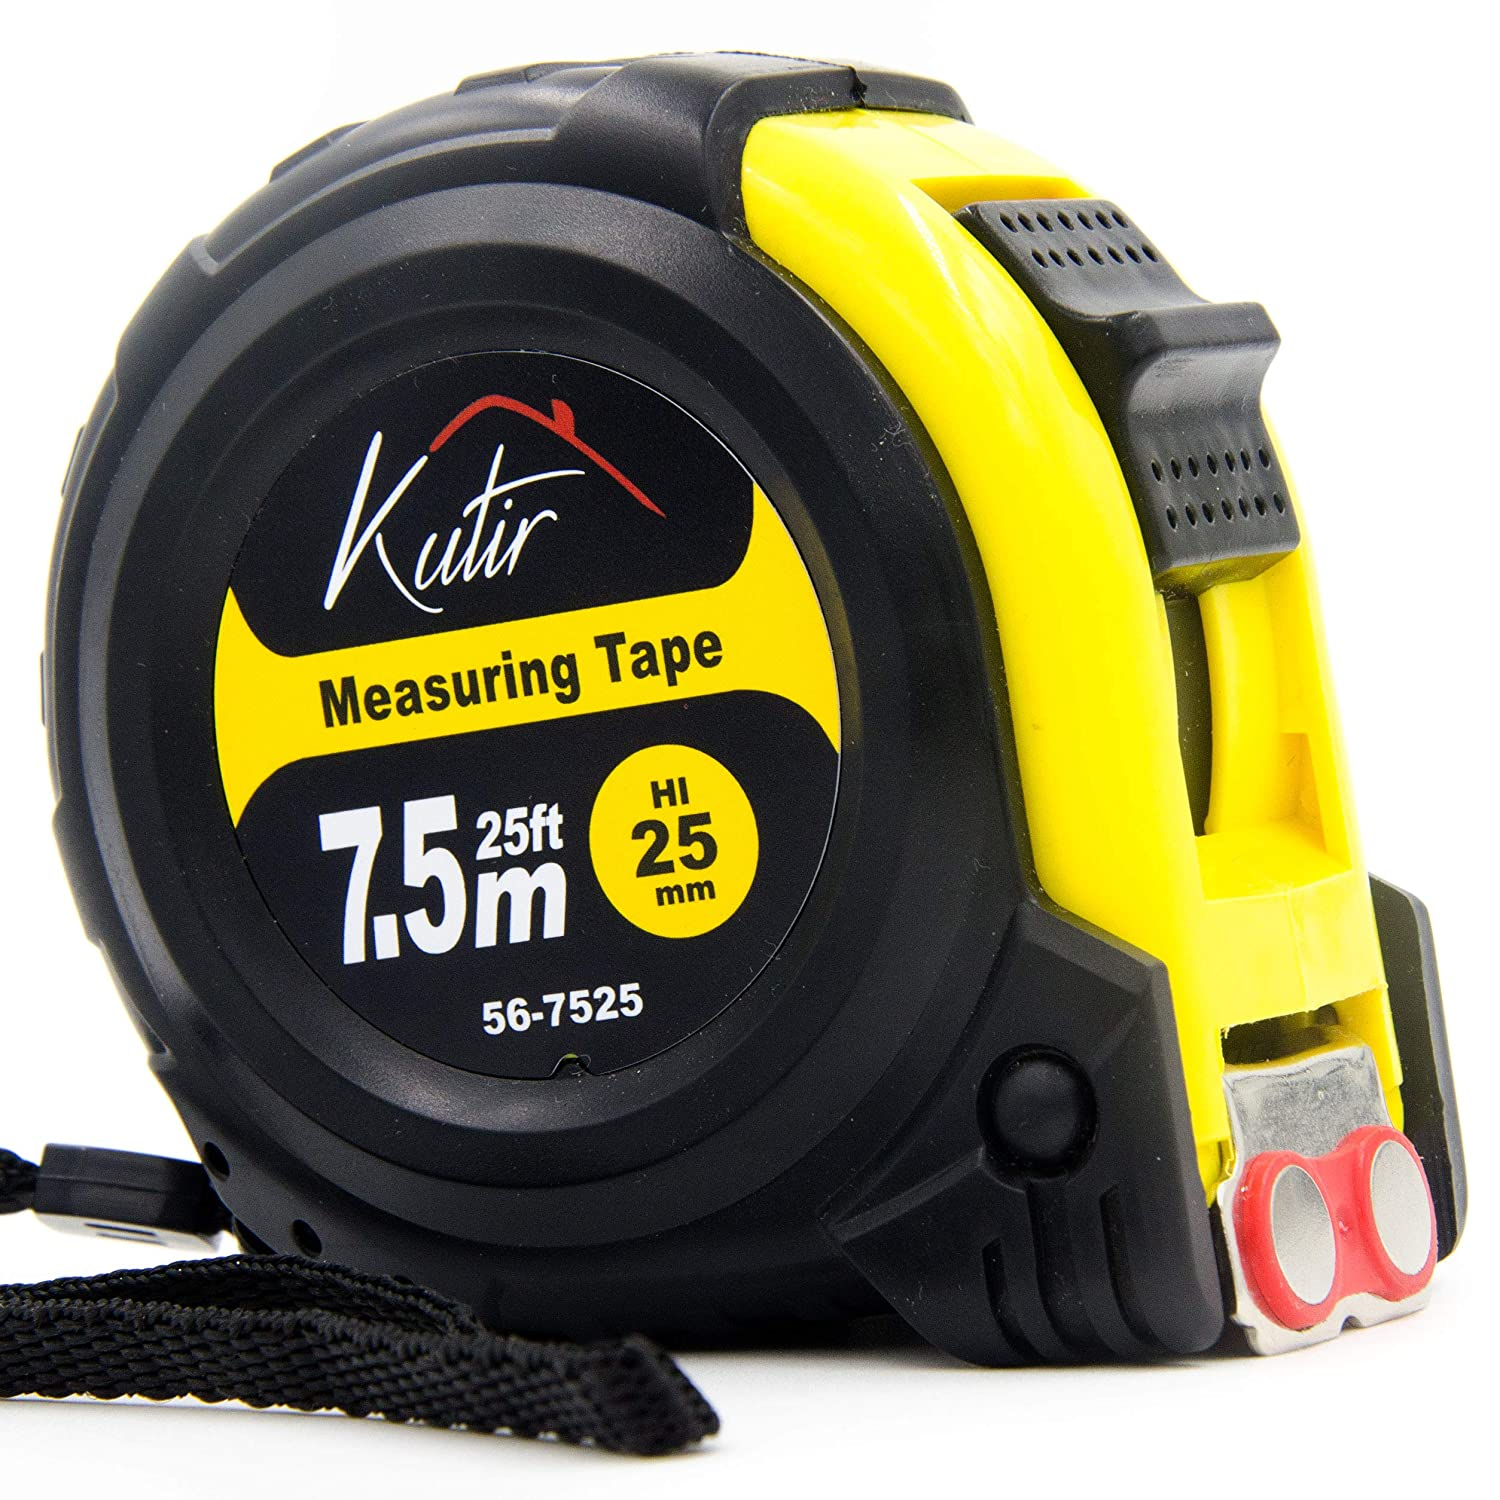 Measuring Tape Measure By Kutir EASY TO READ 25 Foot BOTH SIDE DUAL RULER Retractable STURDY Heavy Duty MAGNETIC HOOK Metric Inches and Imperial Measurement SHOCK ABSORBENT Solid Rubber Case